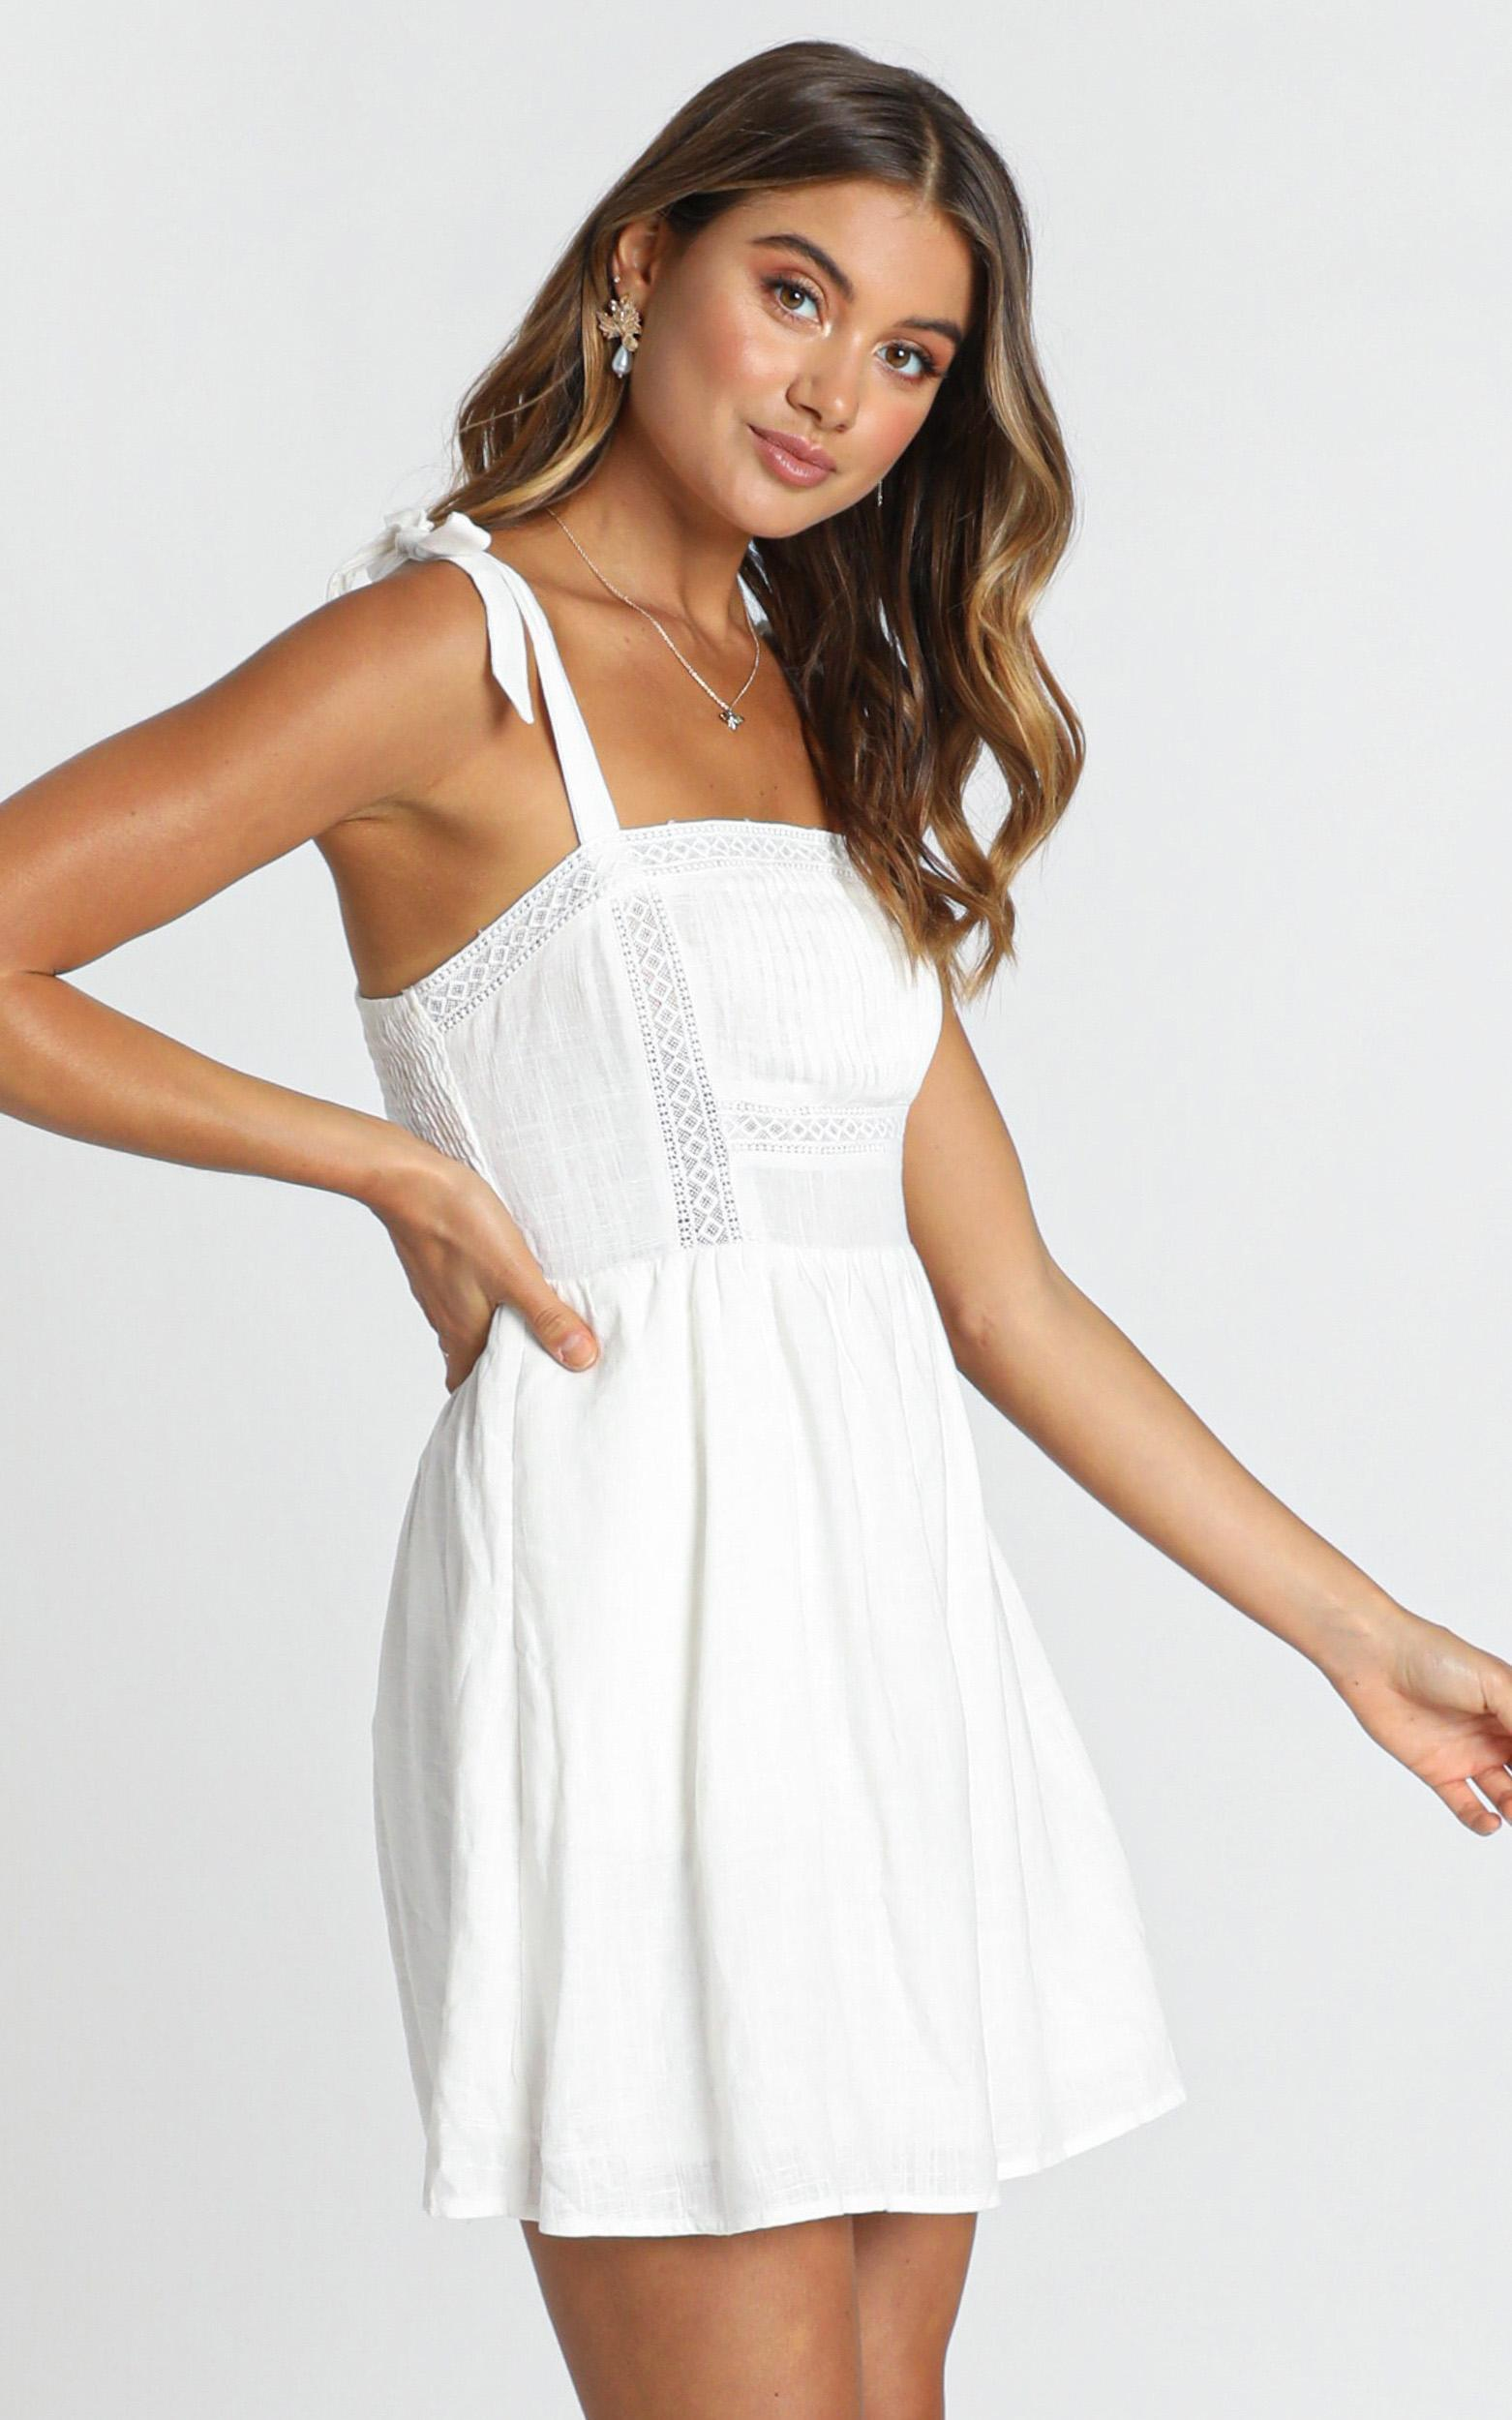 Hawaii Dreaming Dress in white - 12 (L), White, hi-res image number null